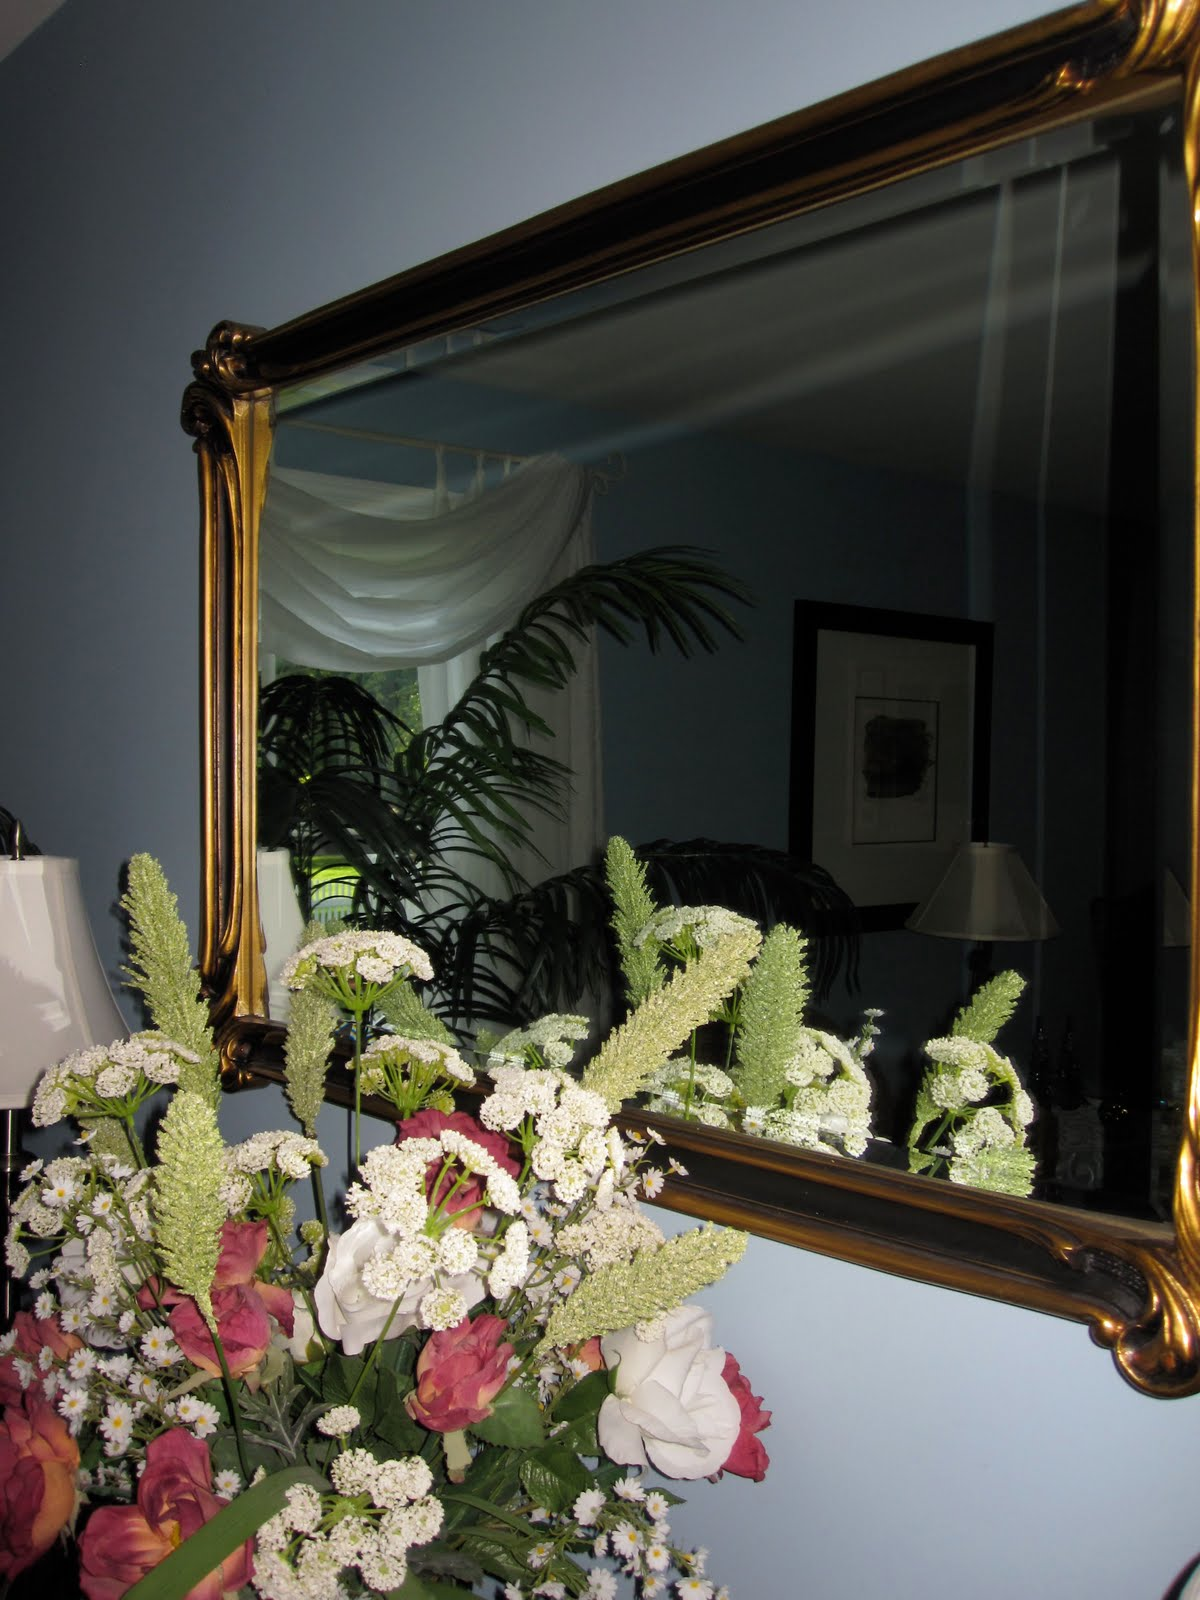 Barb's Decorating Tips: Use Mirrors To Reflect Light